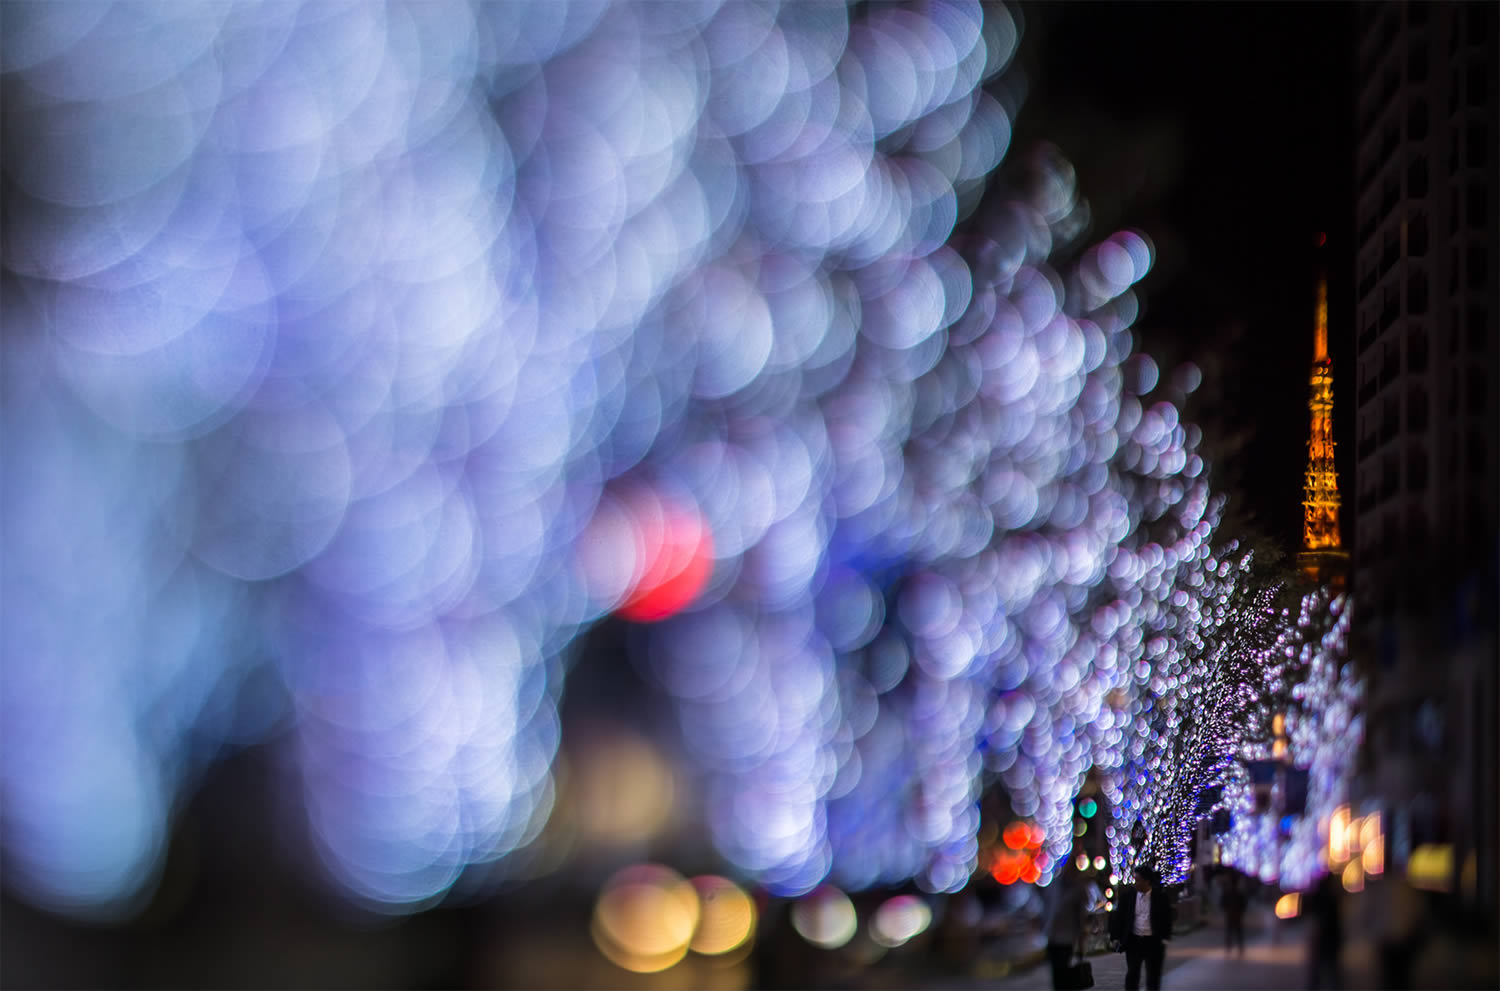 blue bokeh photography, japan, by Takashi Kitajima